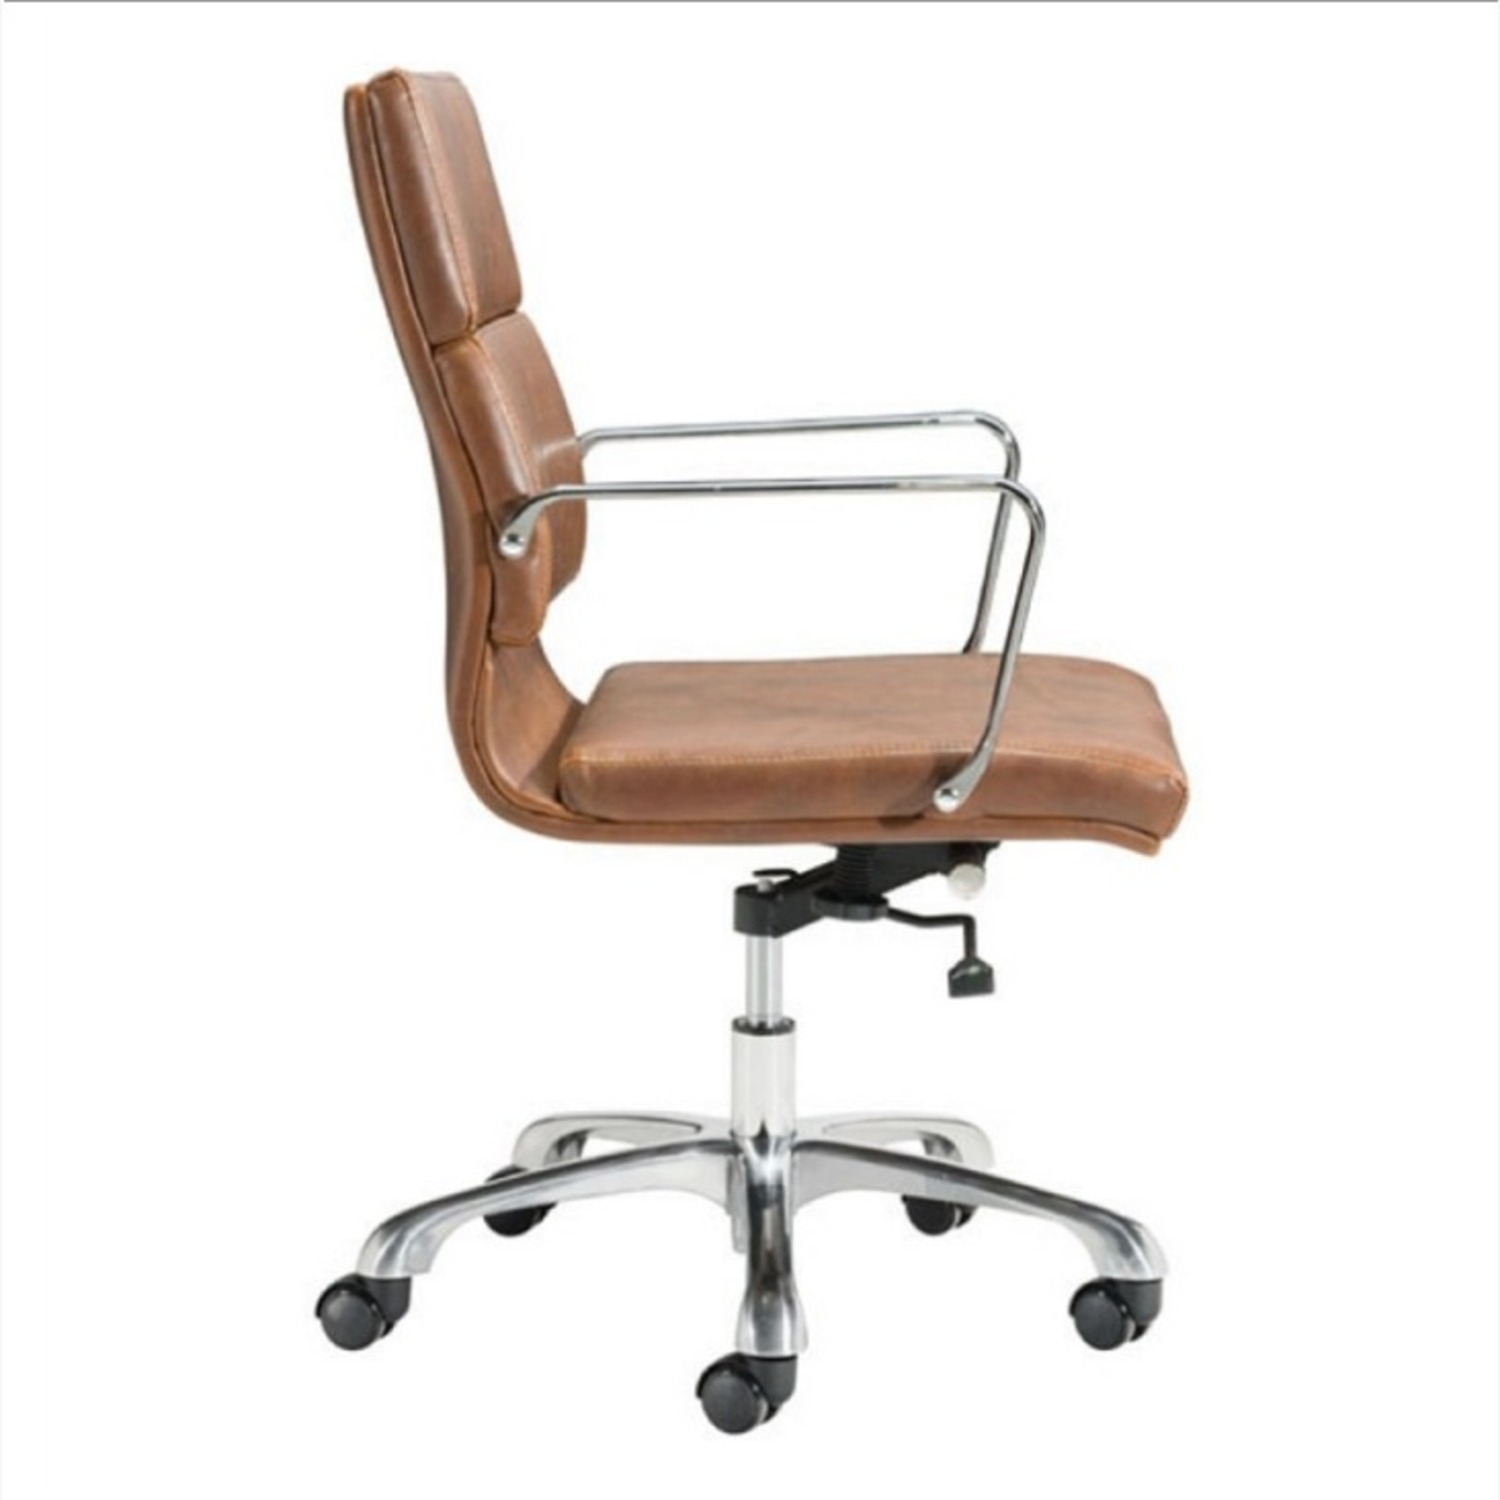 Office Chair In Brown Faux Leather Seat & Back - image-1